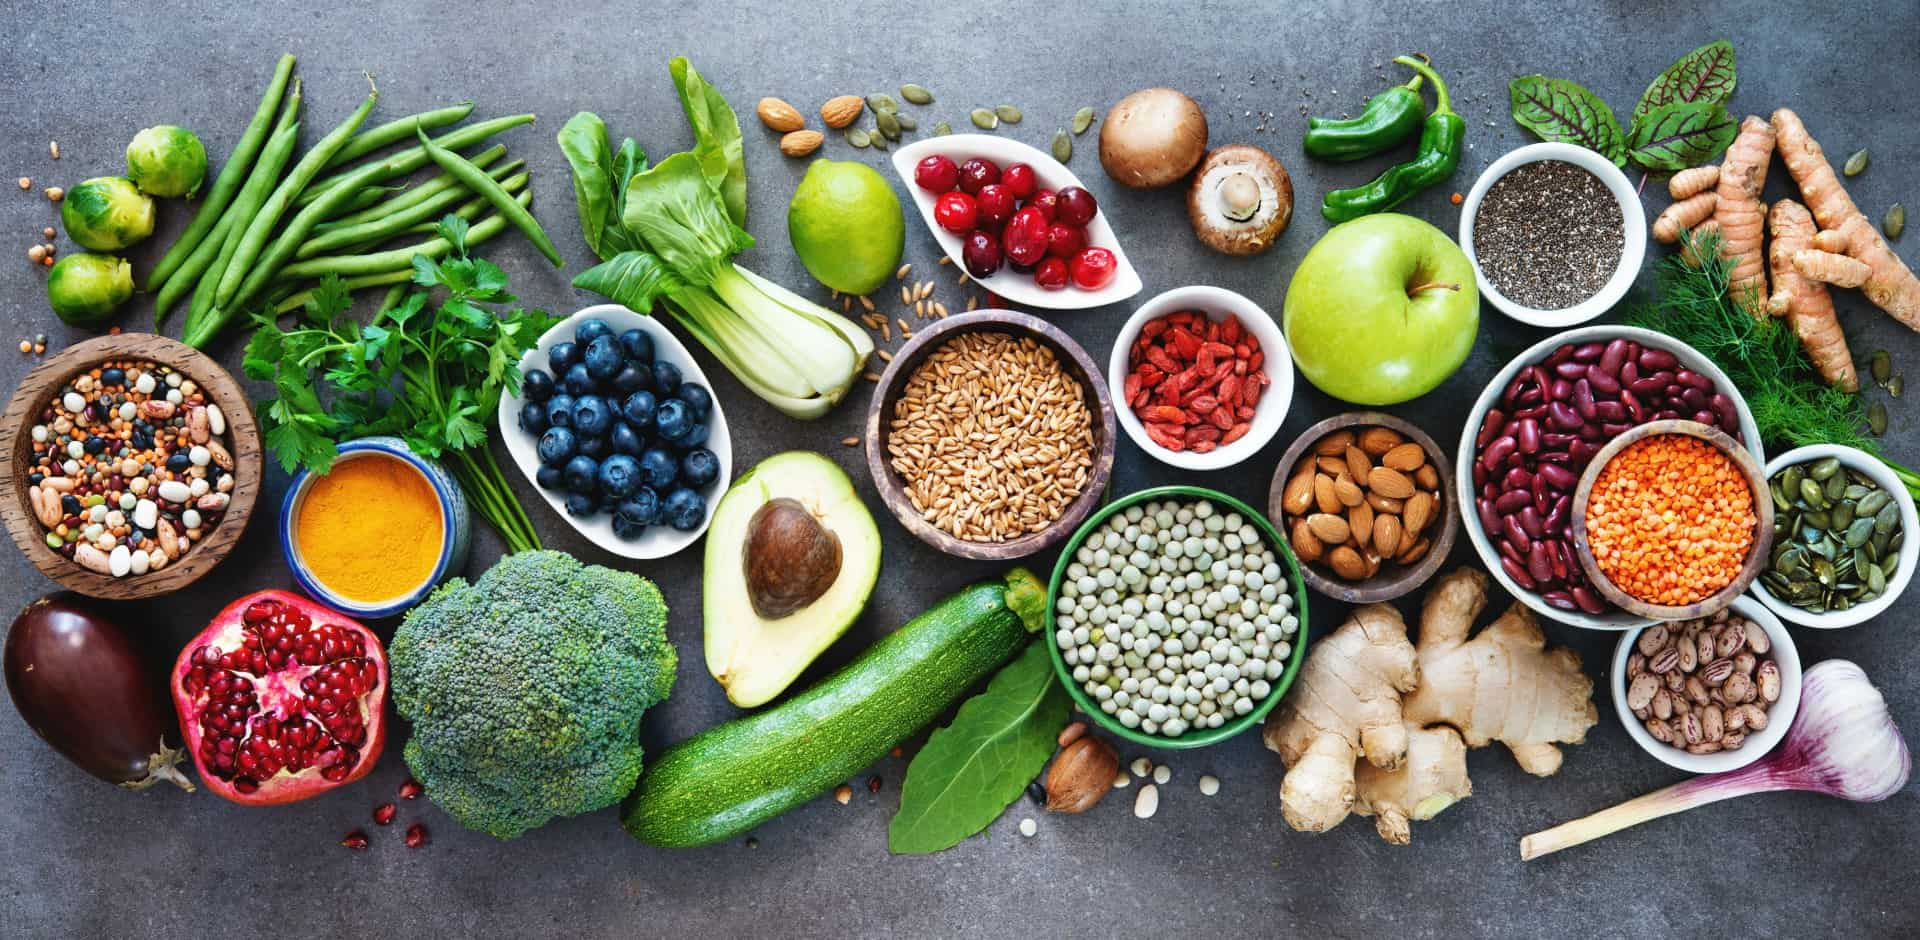 Vegetables, Beans, and Fruits